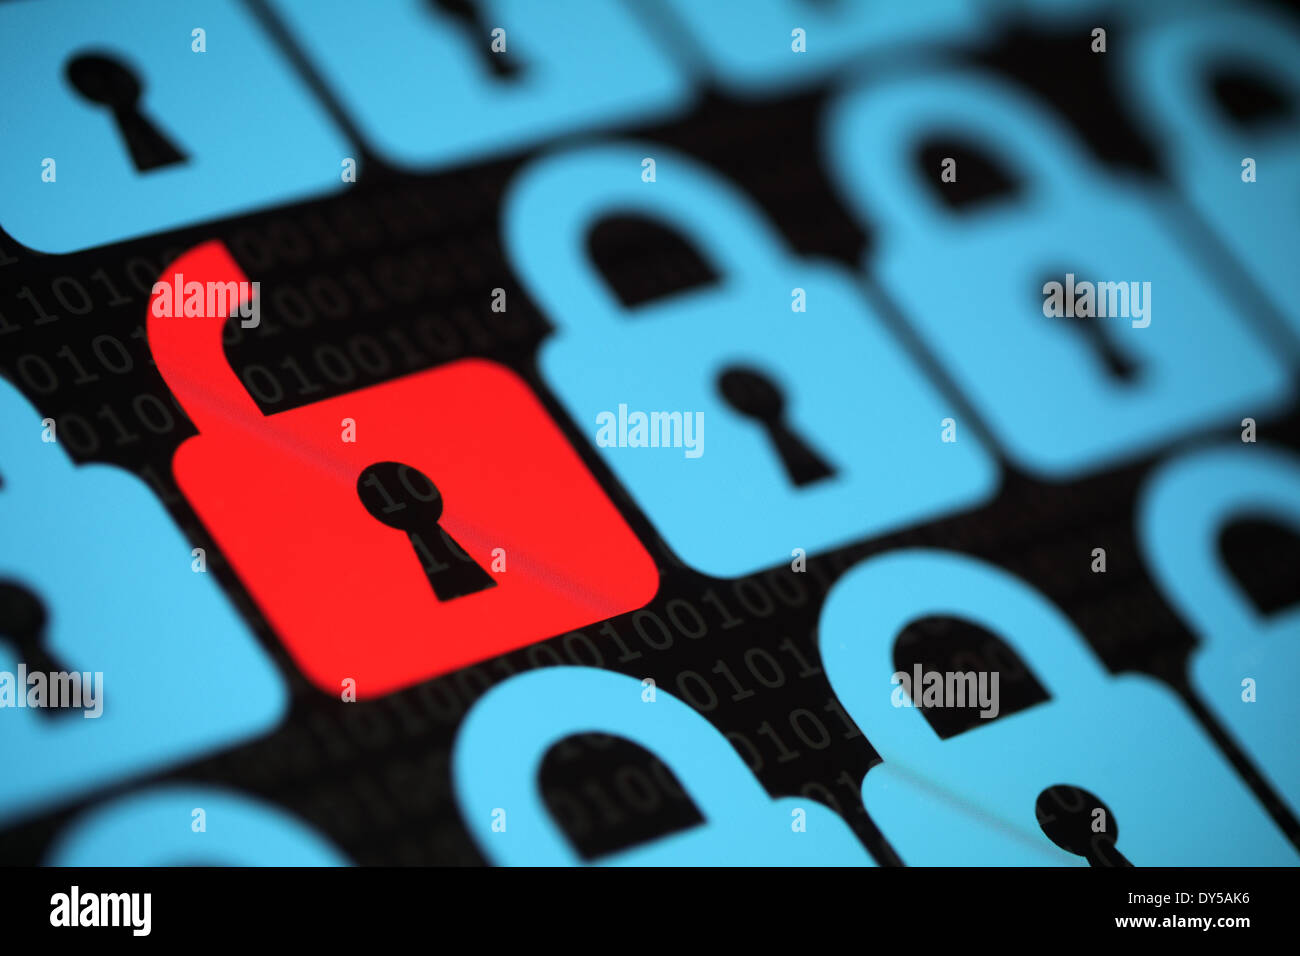 Internet security - Stock Image